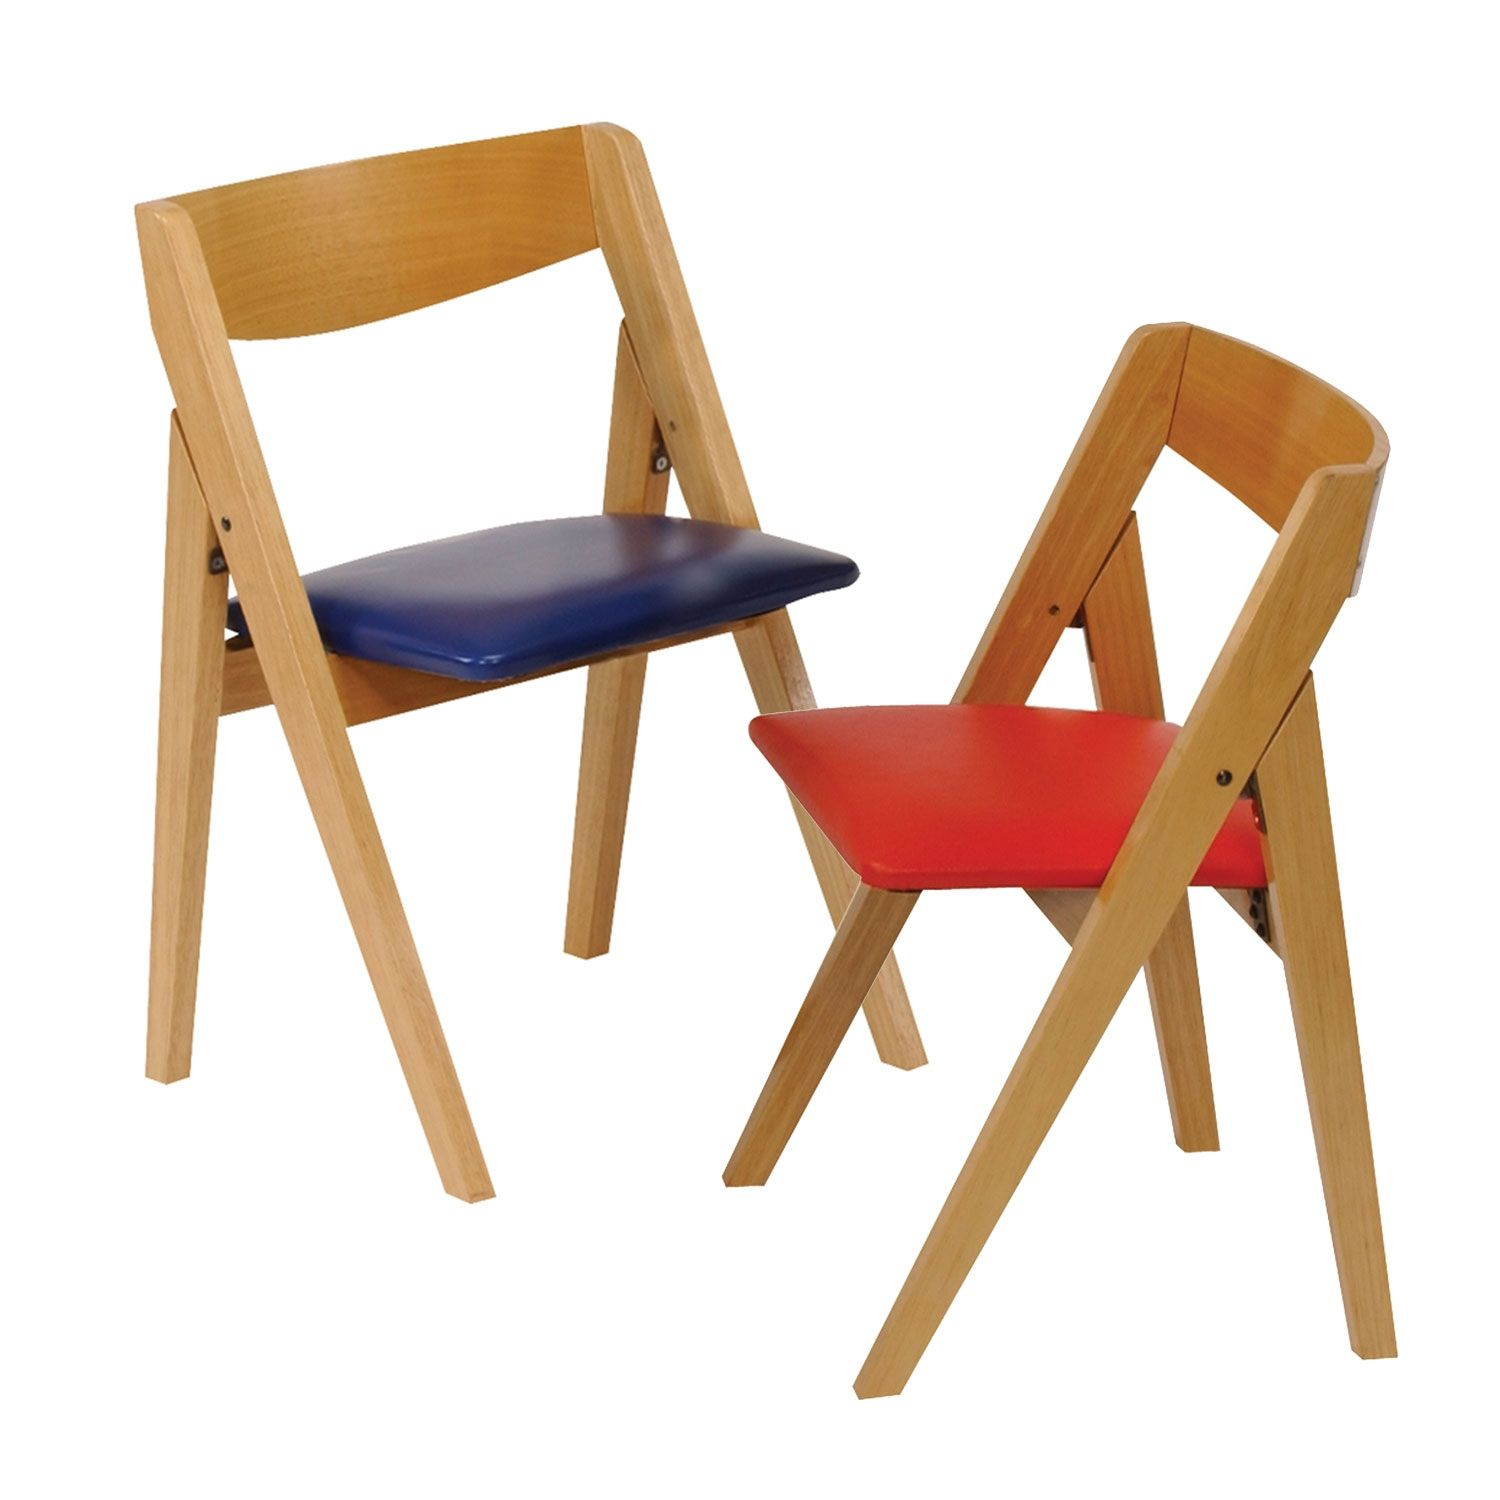 Childrens Folding Table And Chairs Childrens Fold Up Chairs Retro Home Wooden Folding Chairs